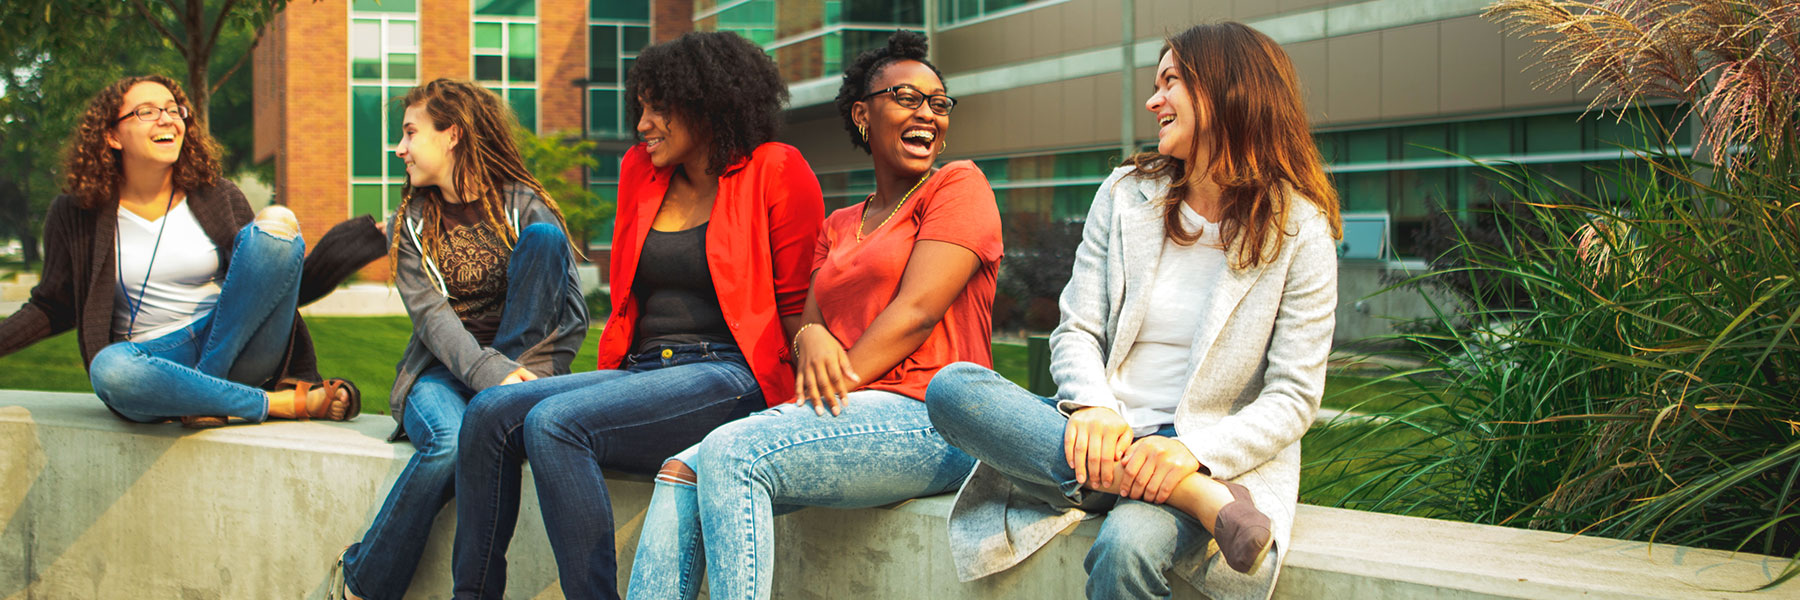 Five young women outside on campus laughing